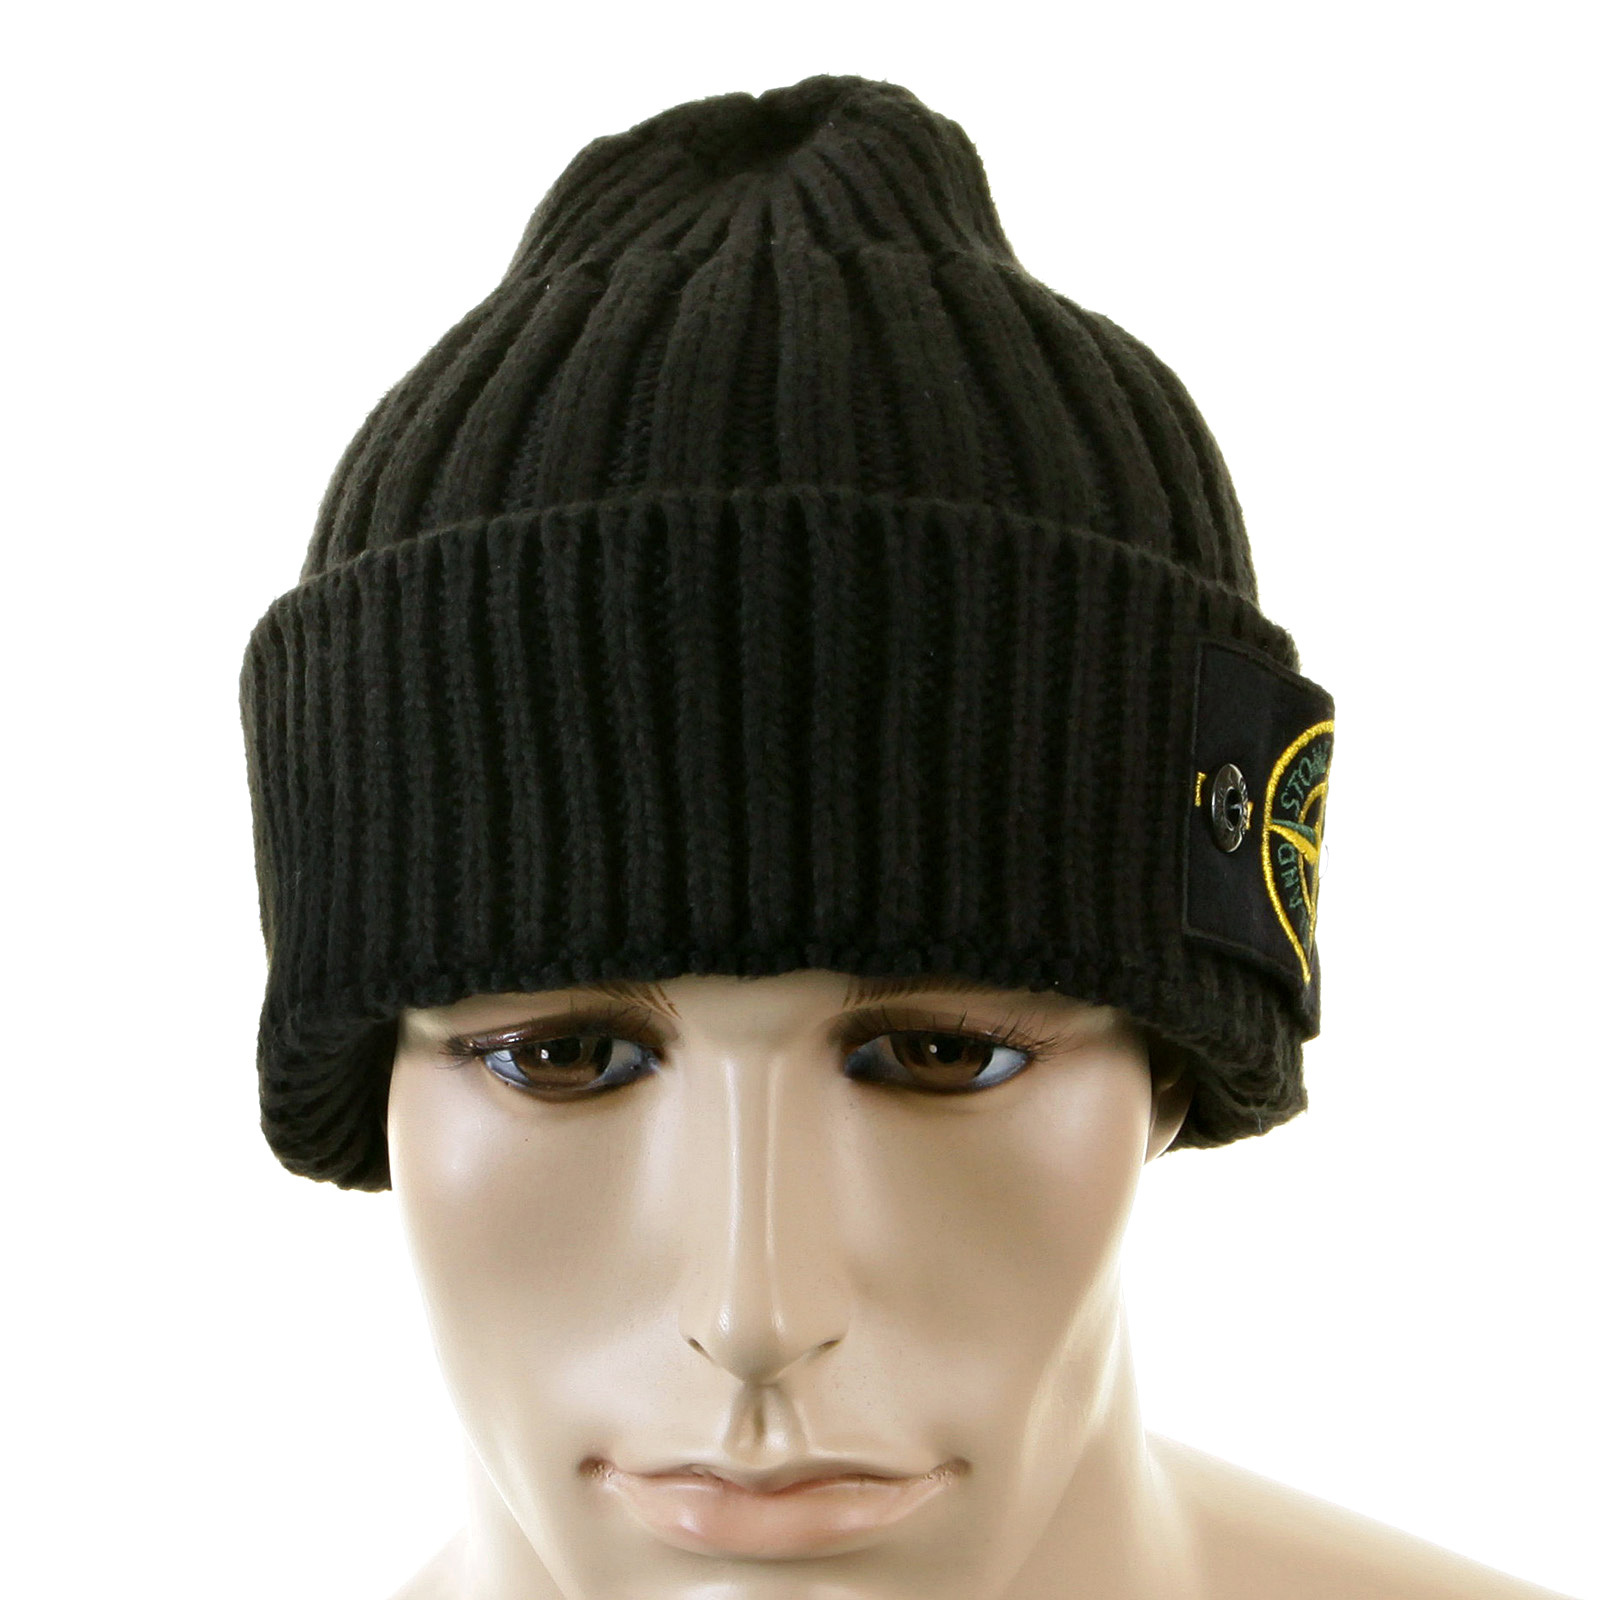 Stone Island Beanie Black roll beanie hat 5515N01D5 SI2180 at Togged ...